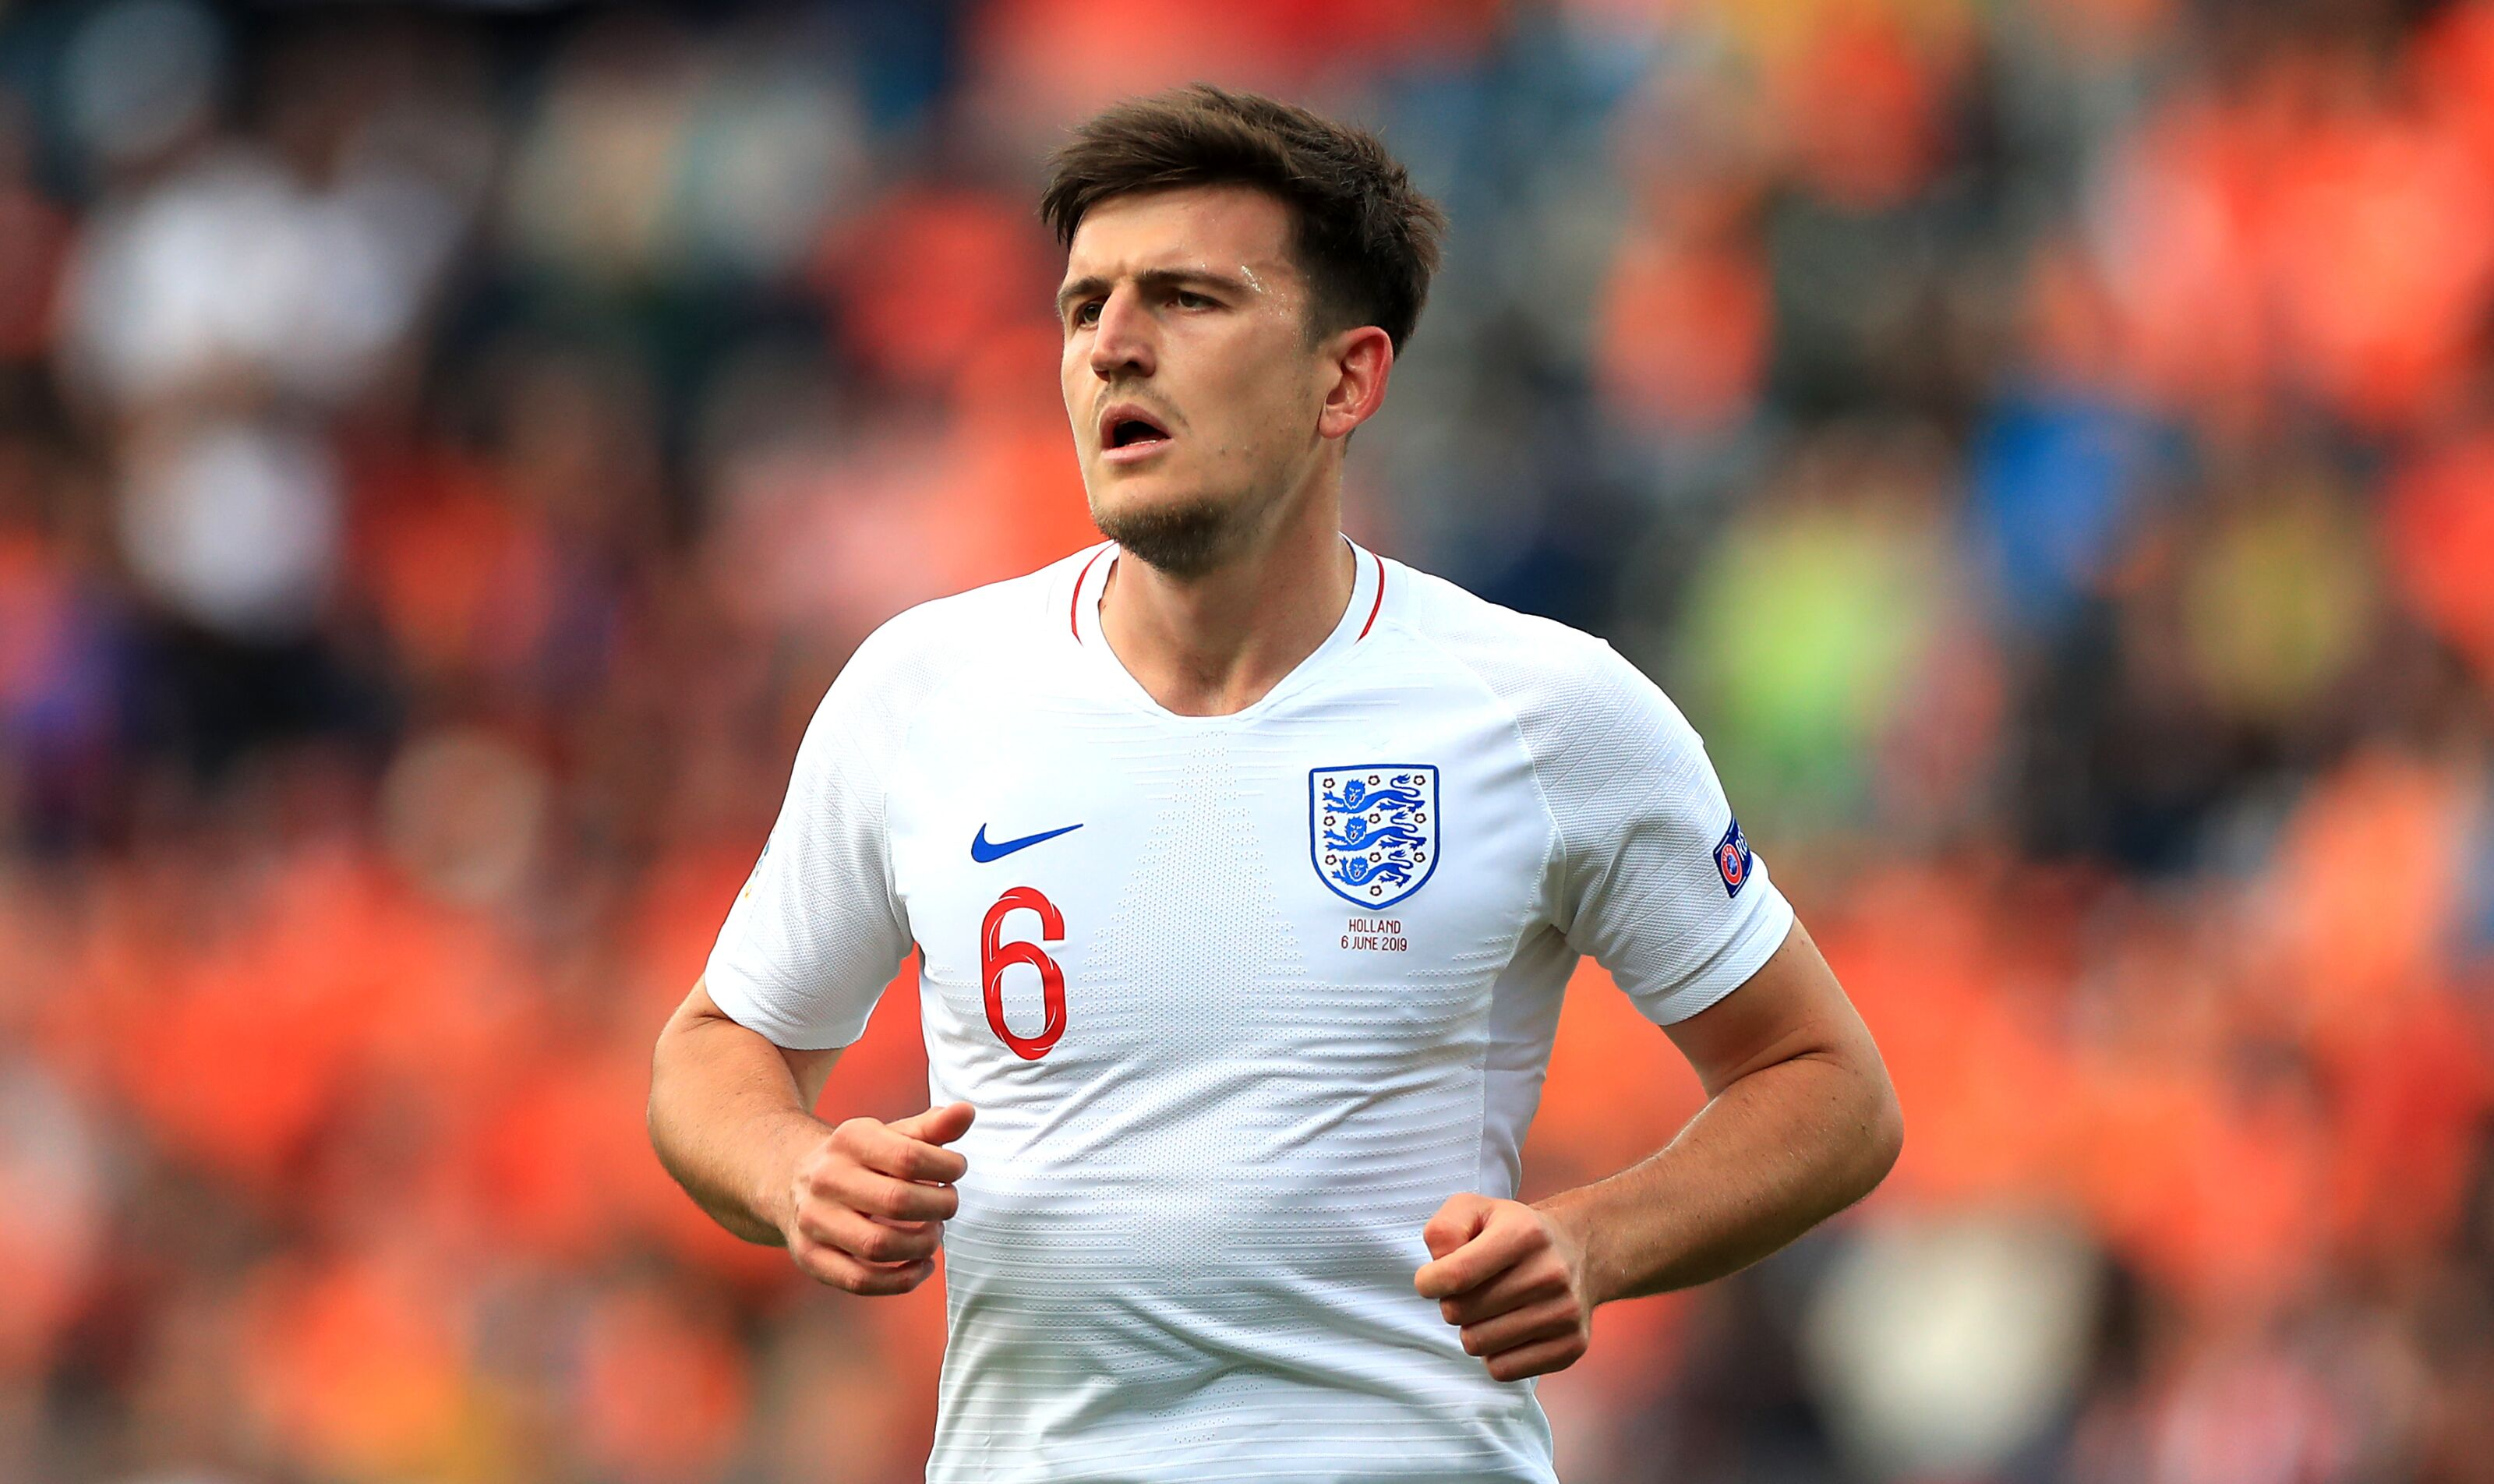 Harry Maguire is off to Manchester: City or United?